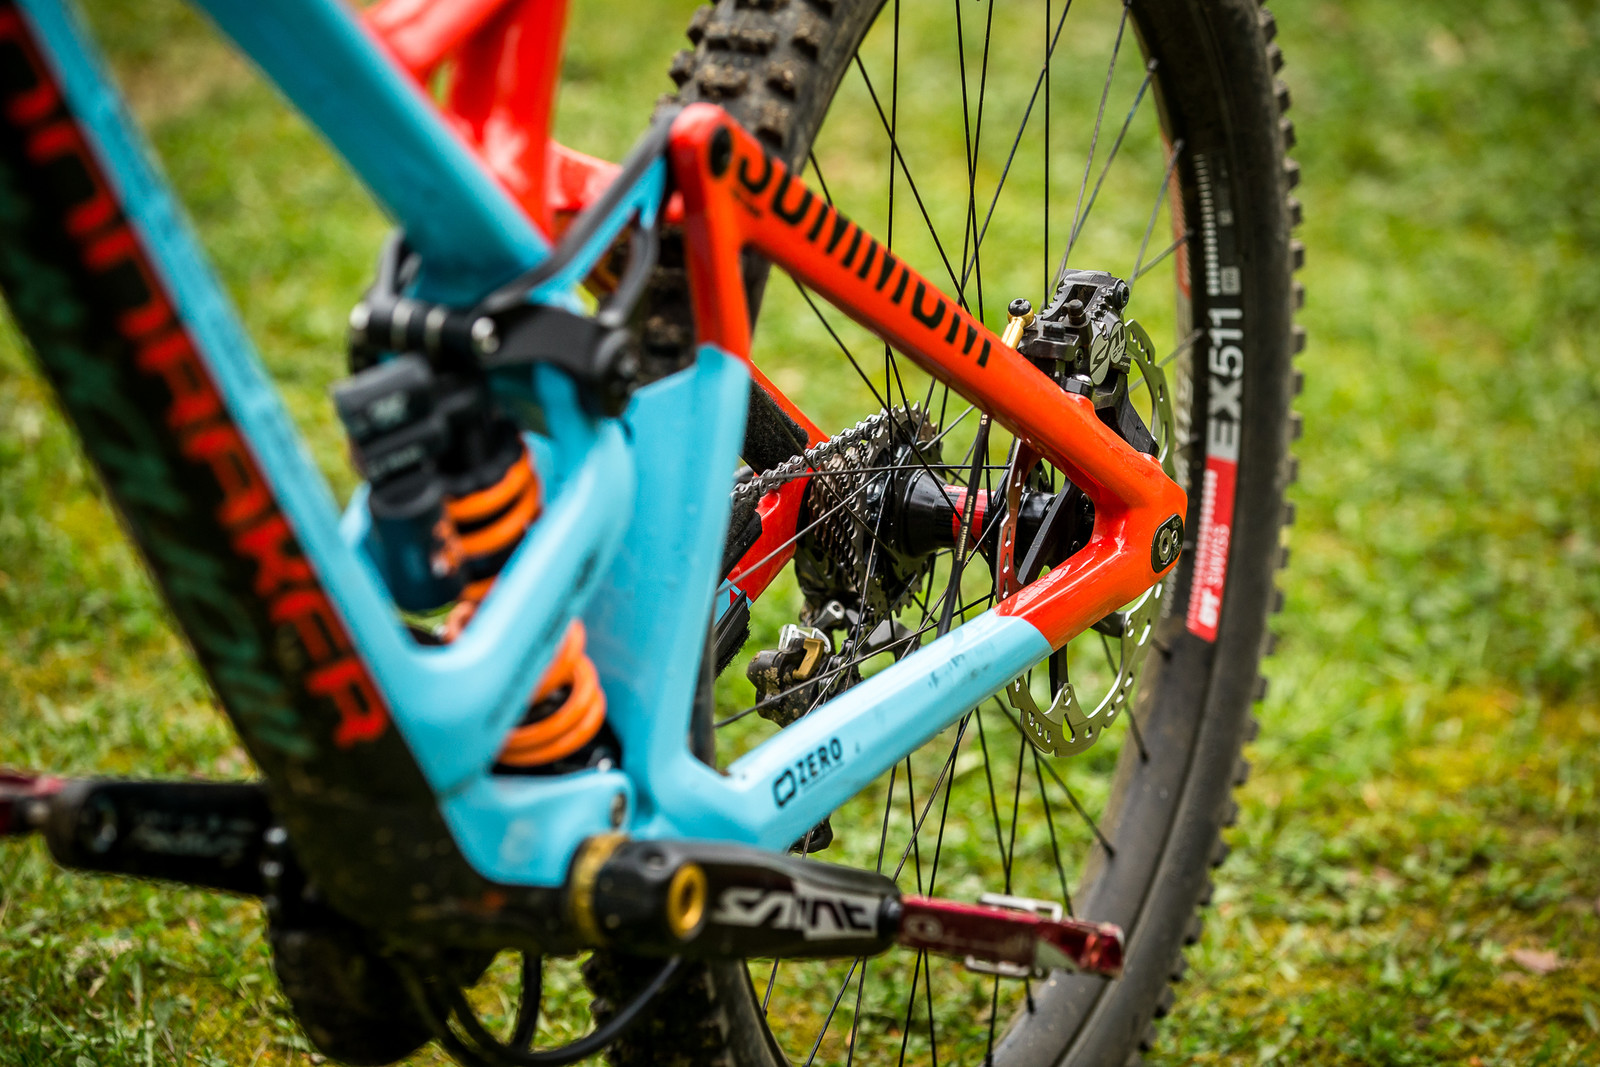 5mm Back in the Dropouts - WINNING BIKE - Laurie Greenland's Mondraker Summum - Mountain Biking Pictures - Vital MTB